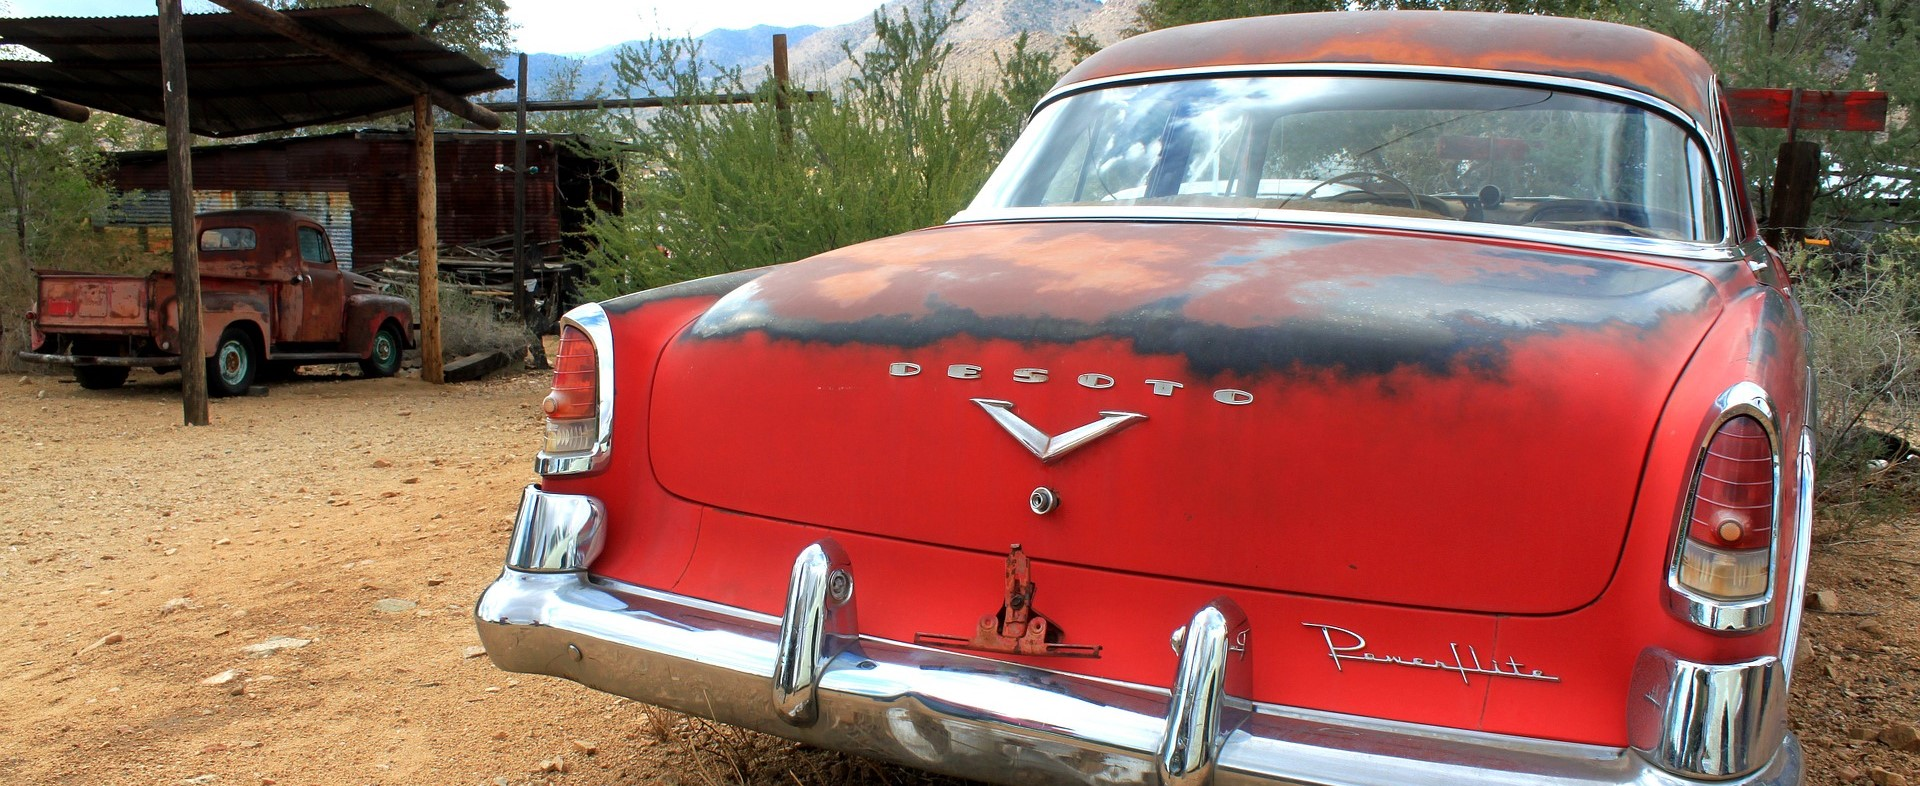 Oldtimer Car in Nevada - CarDonations4Cancer.org